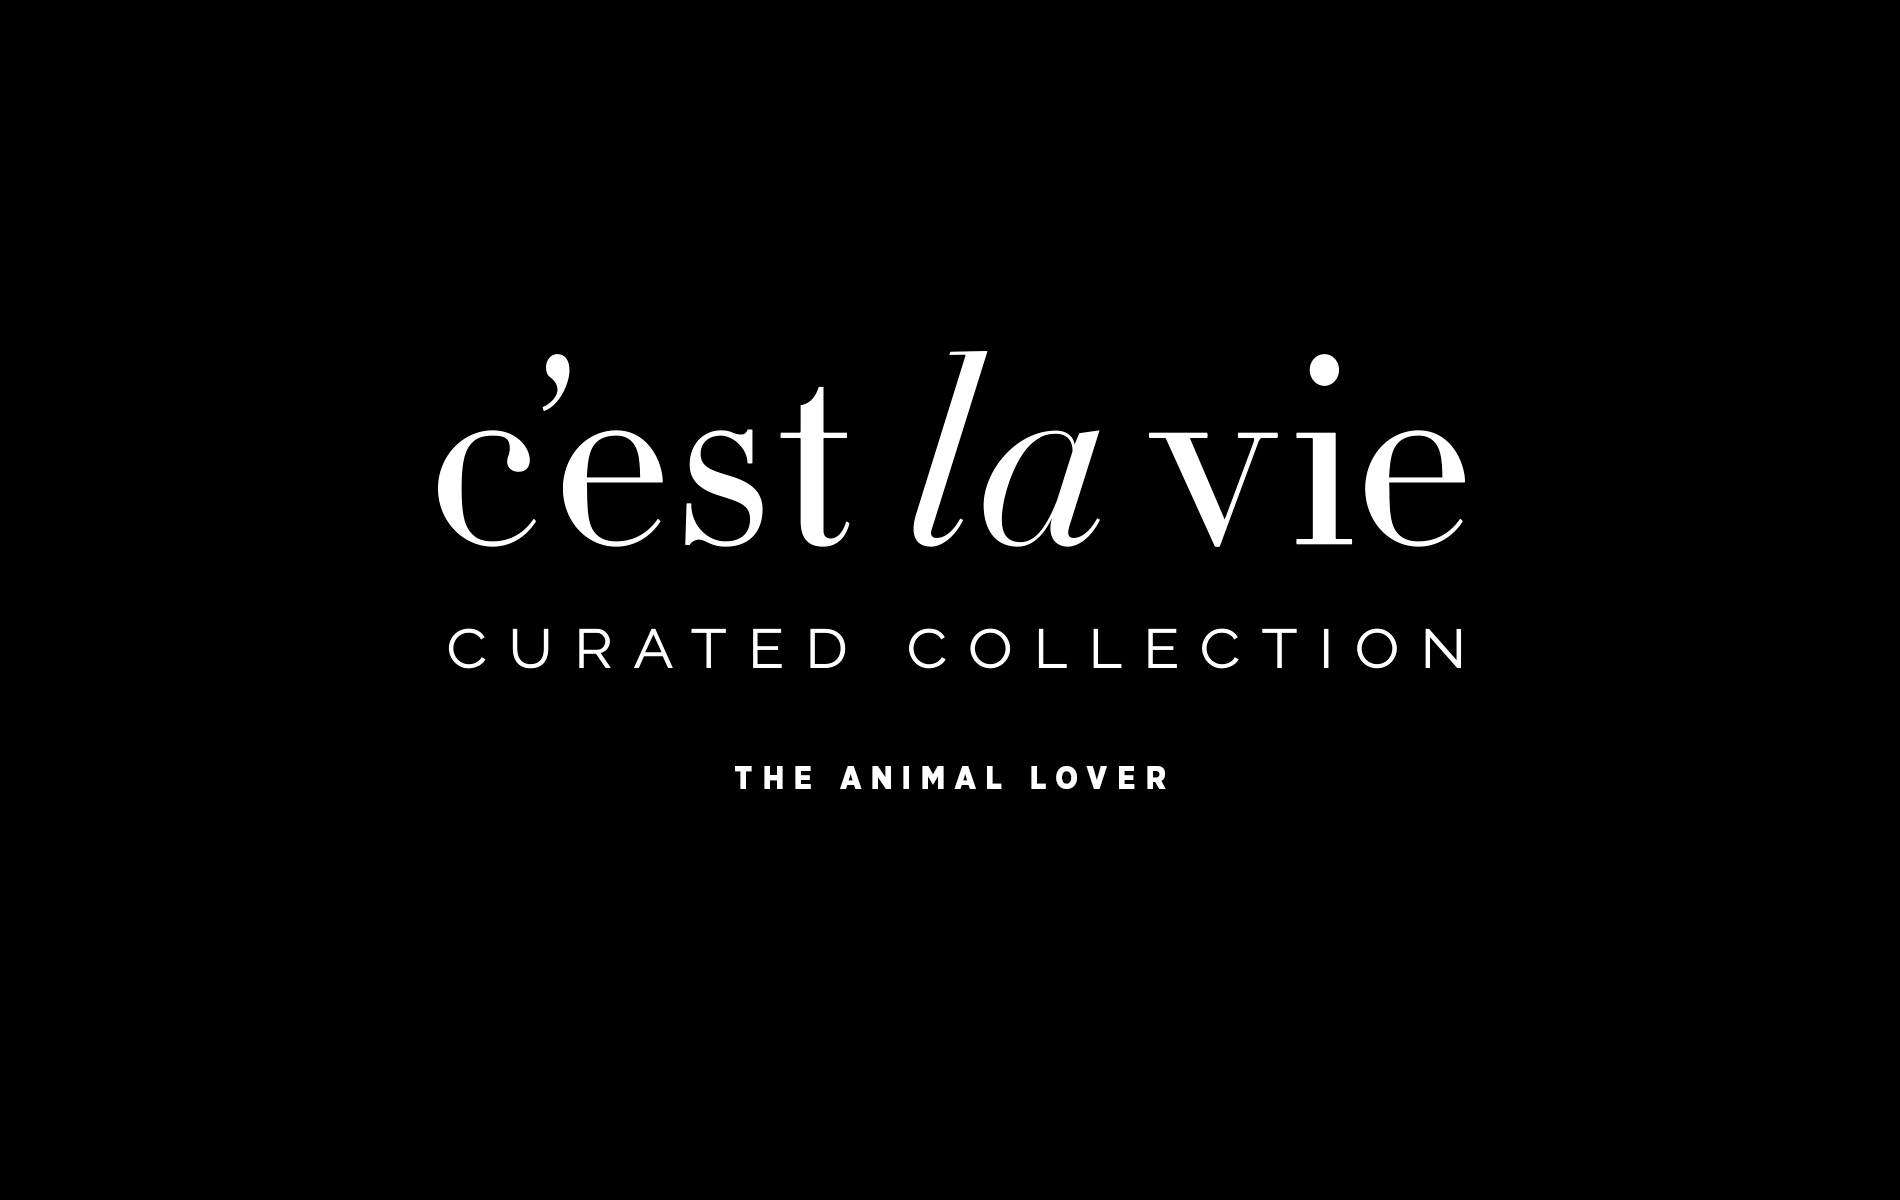 c'est la vie a curated collection august 2018 the animal lover